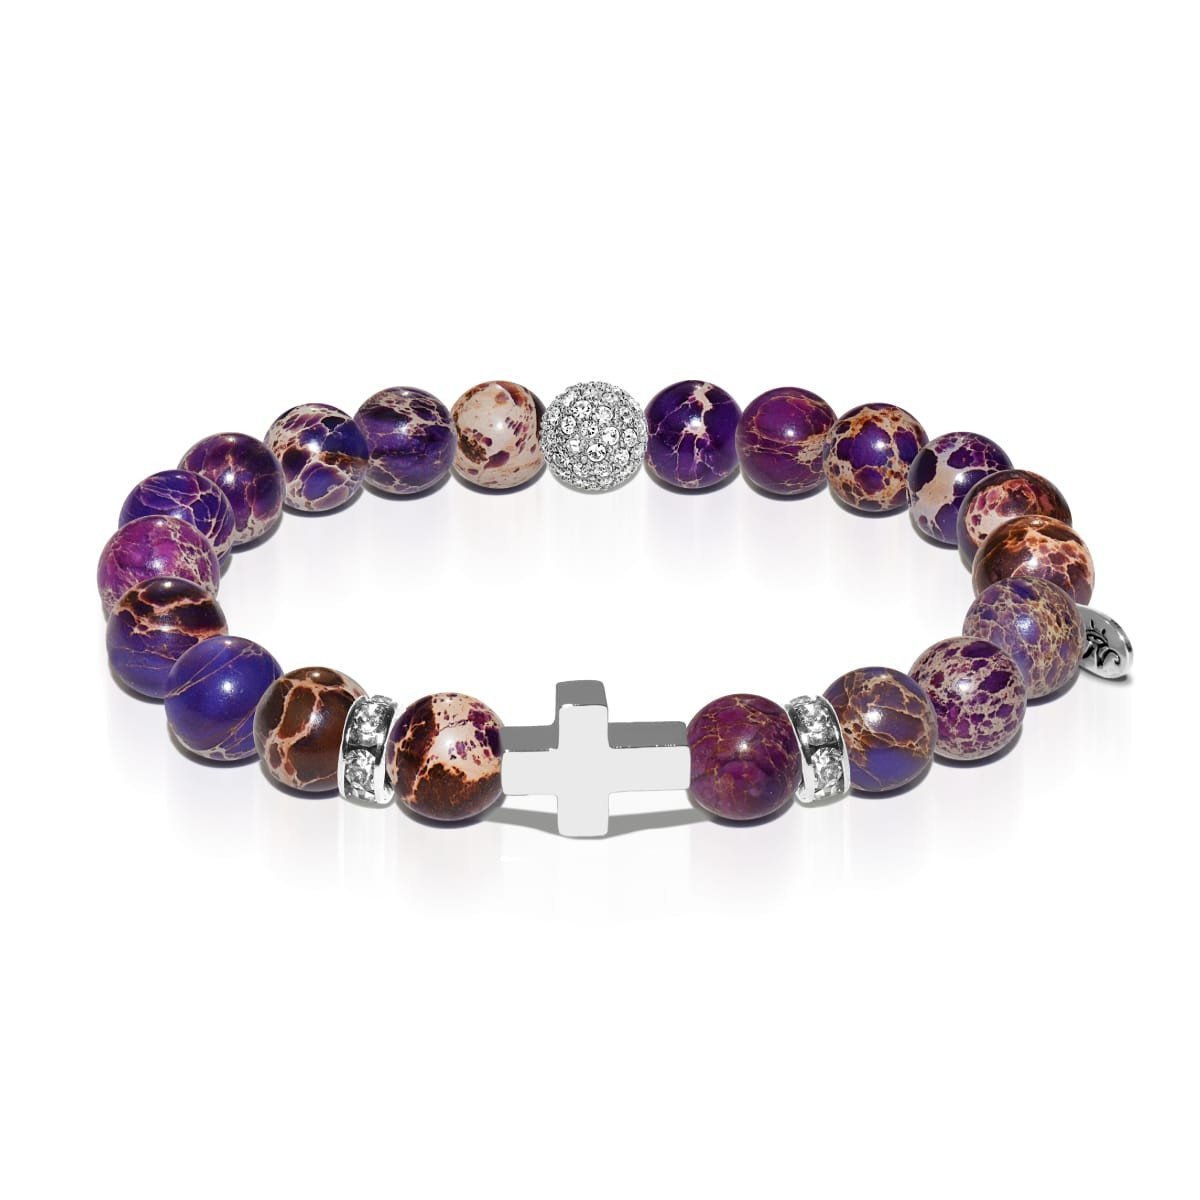 St. George | White Gold Cross | Purple Regarte Bracelet